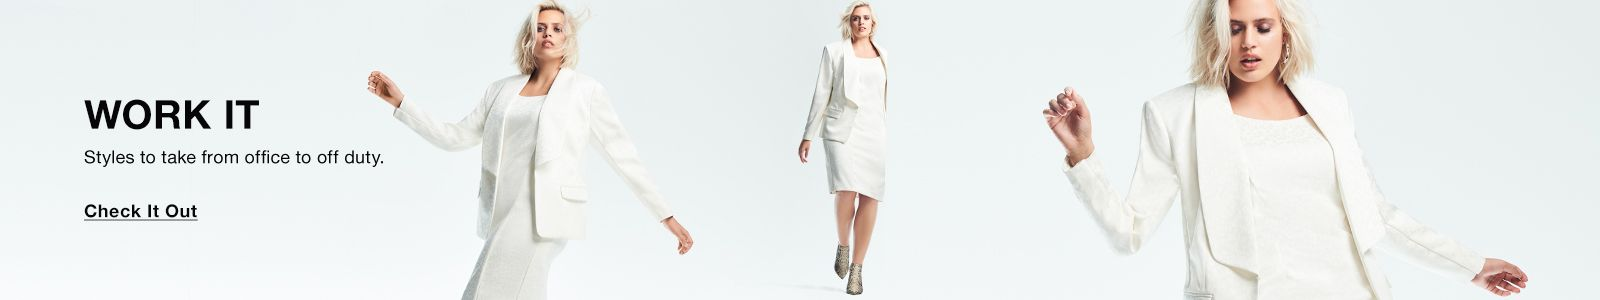 Work it, Styles to take from office to off duty, Check it Out